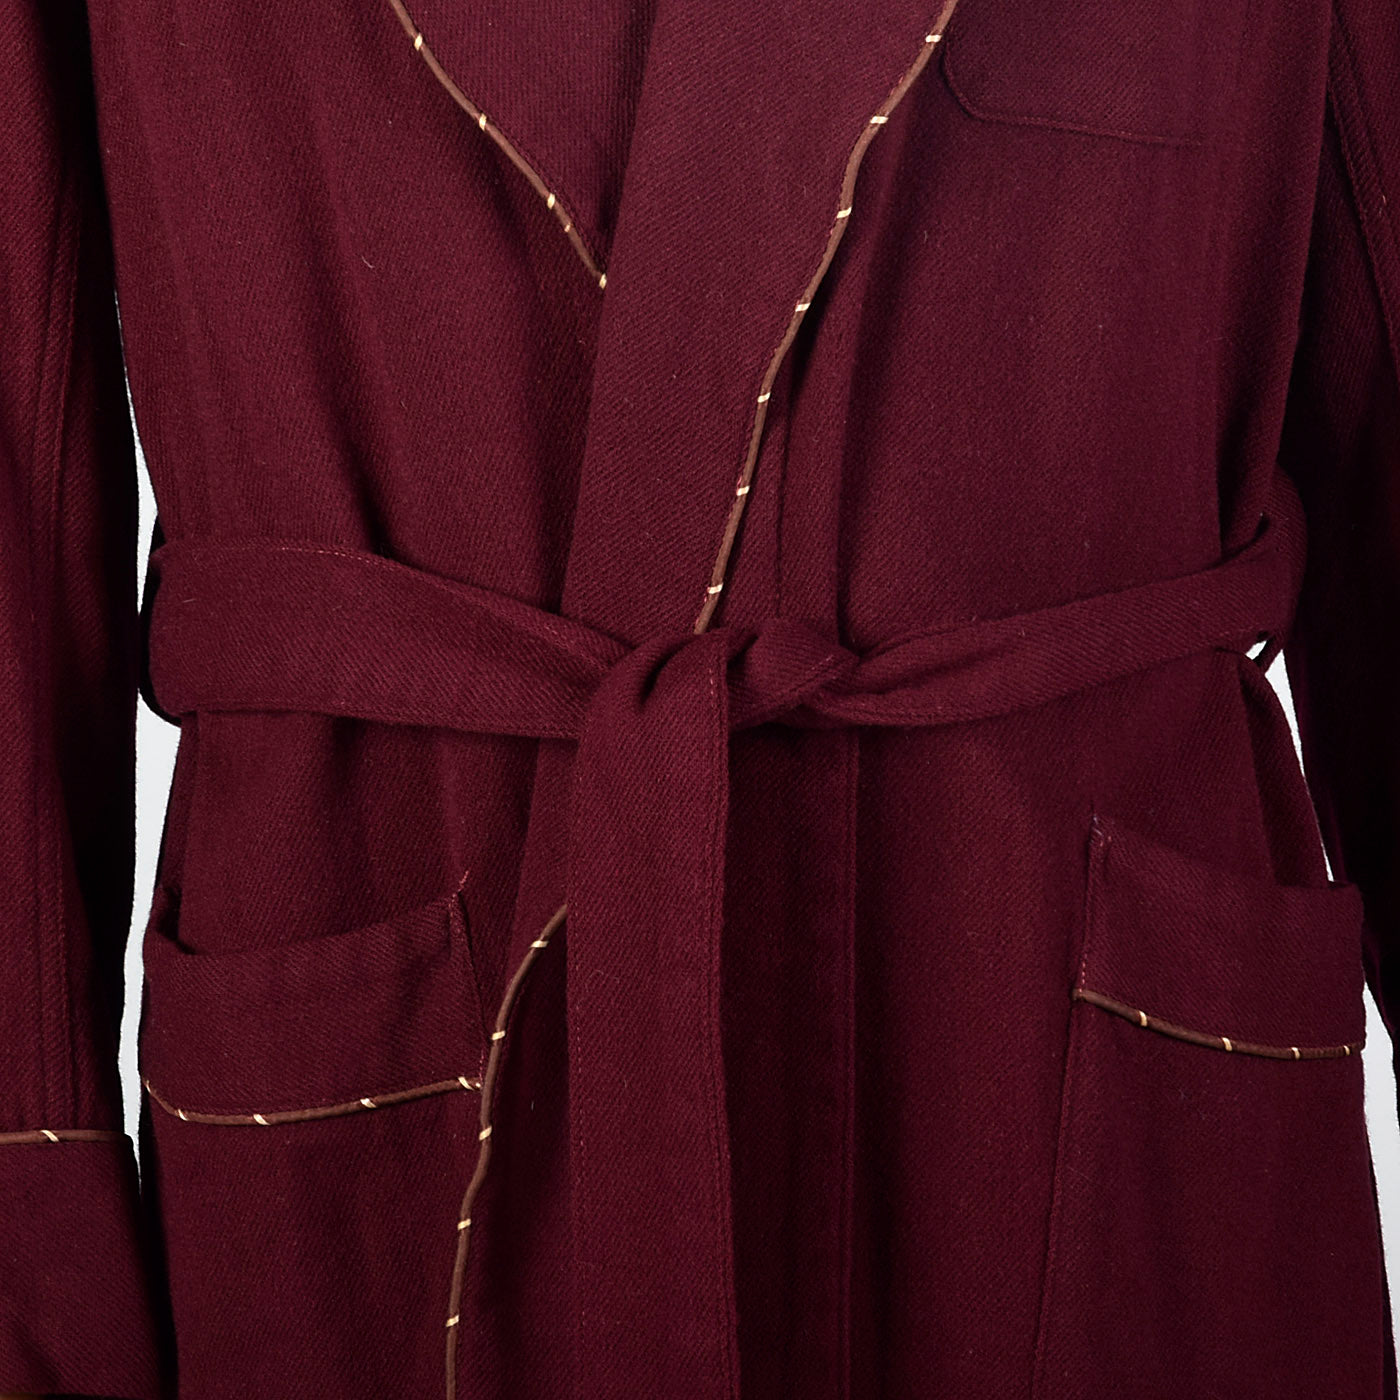 1960s Mens Burgundy Wool Robe with Shawl Collar